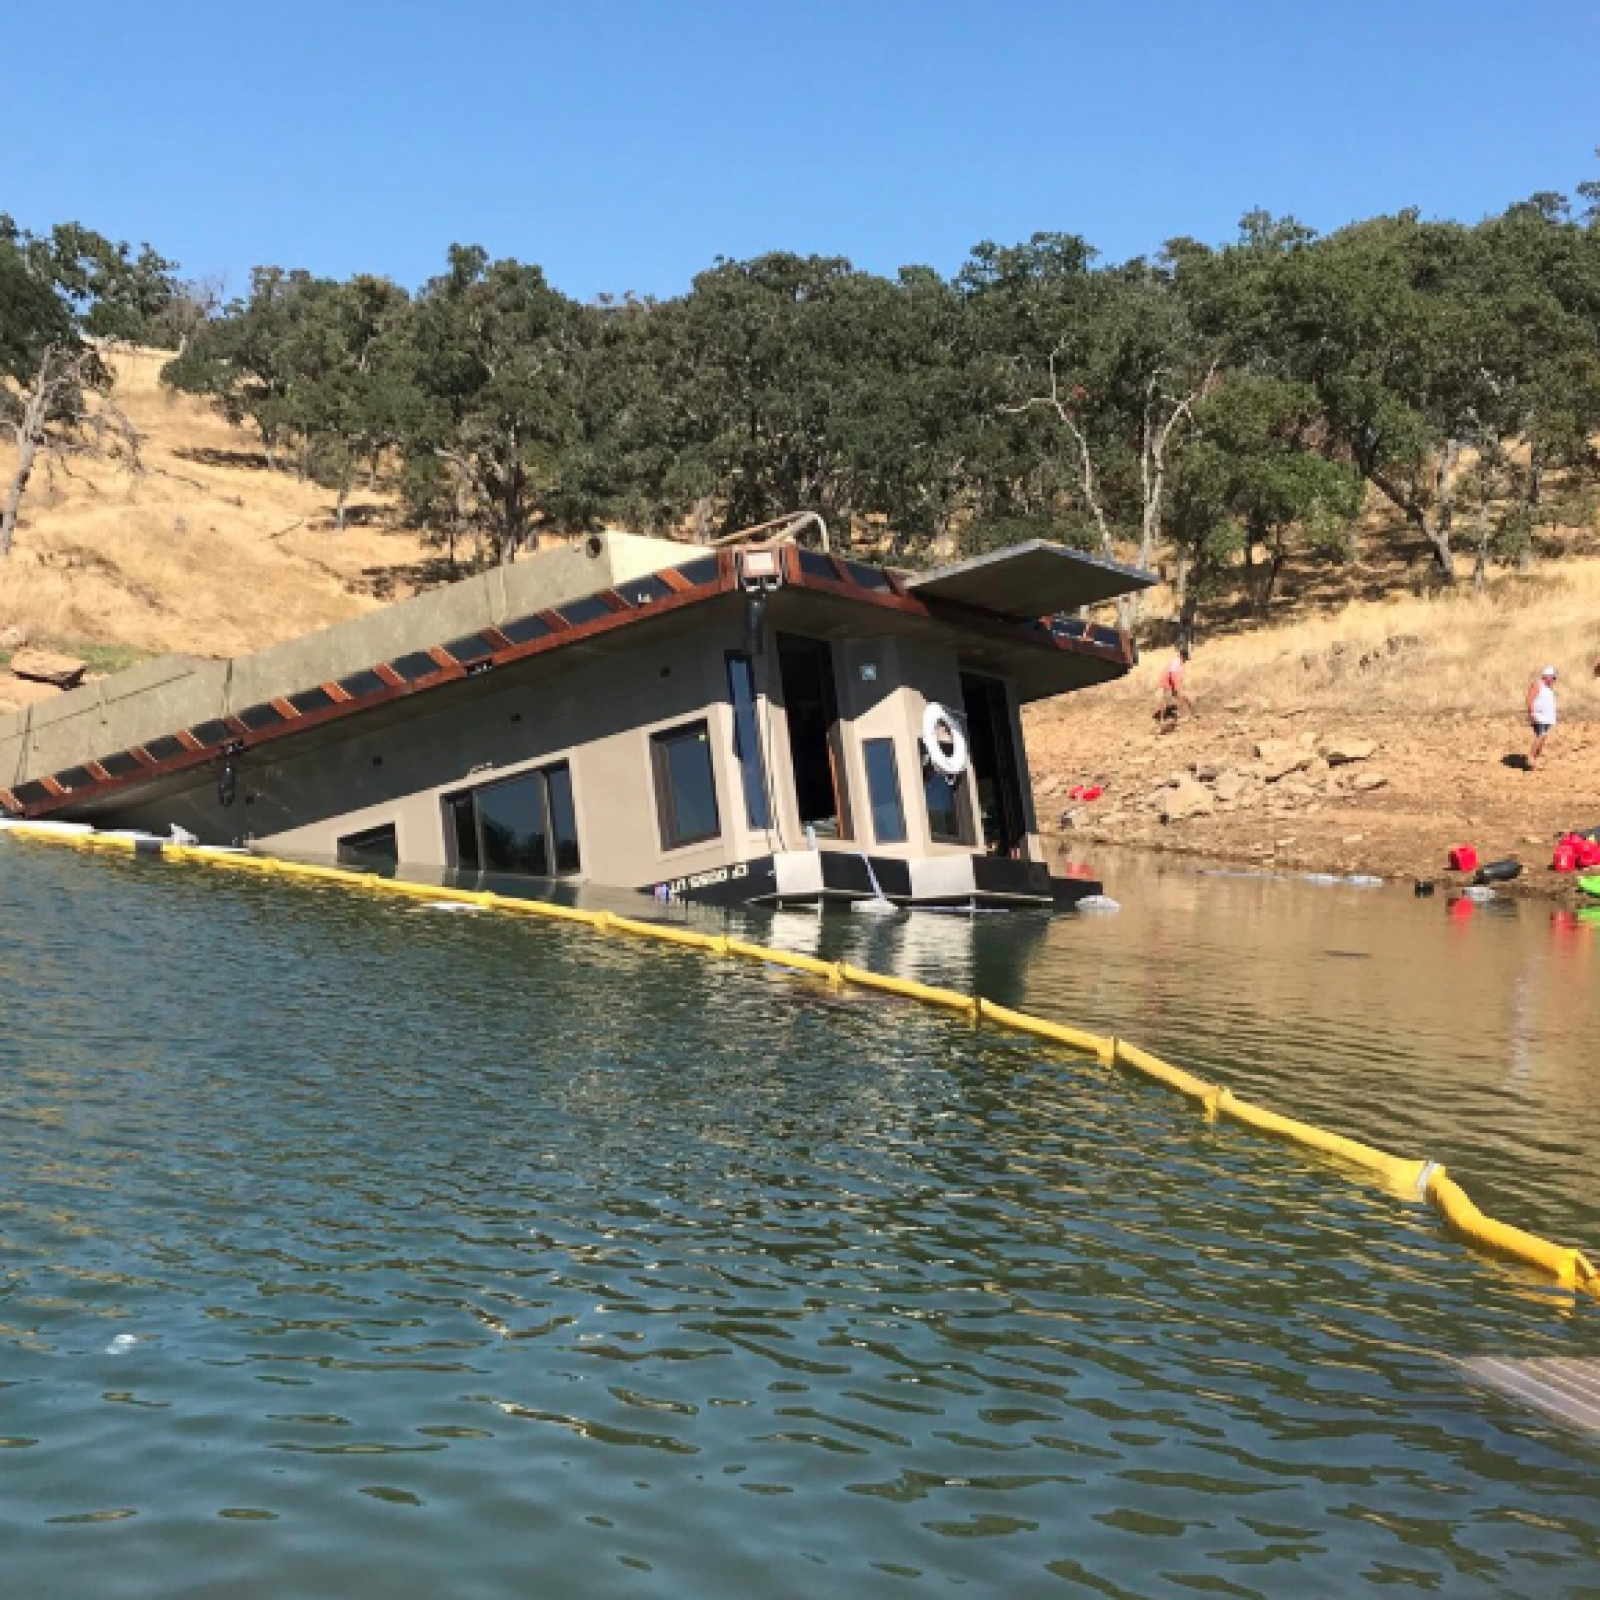 California Houseboat Sinks During Overloaded Poker Party